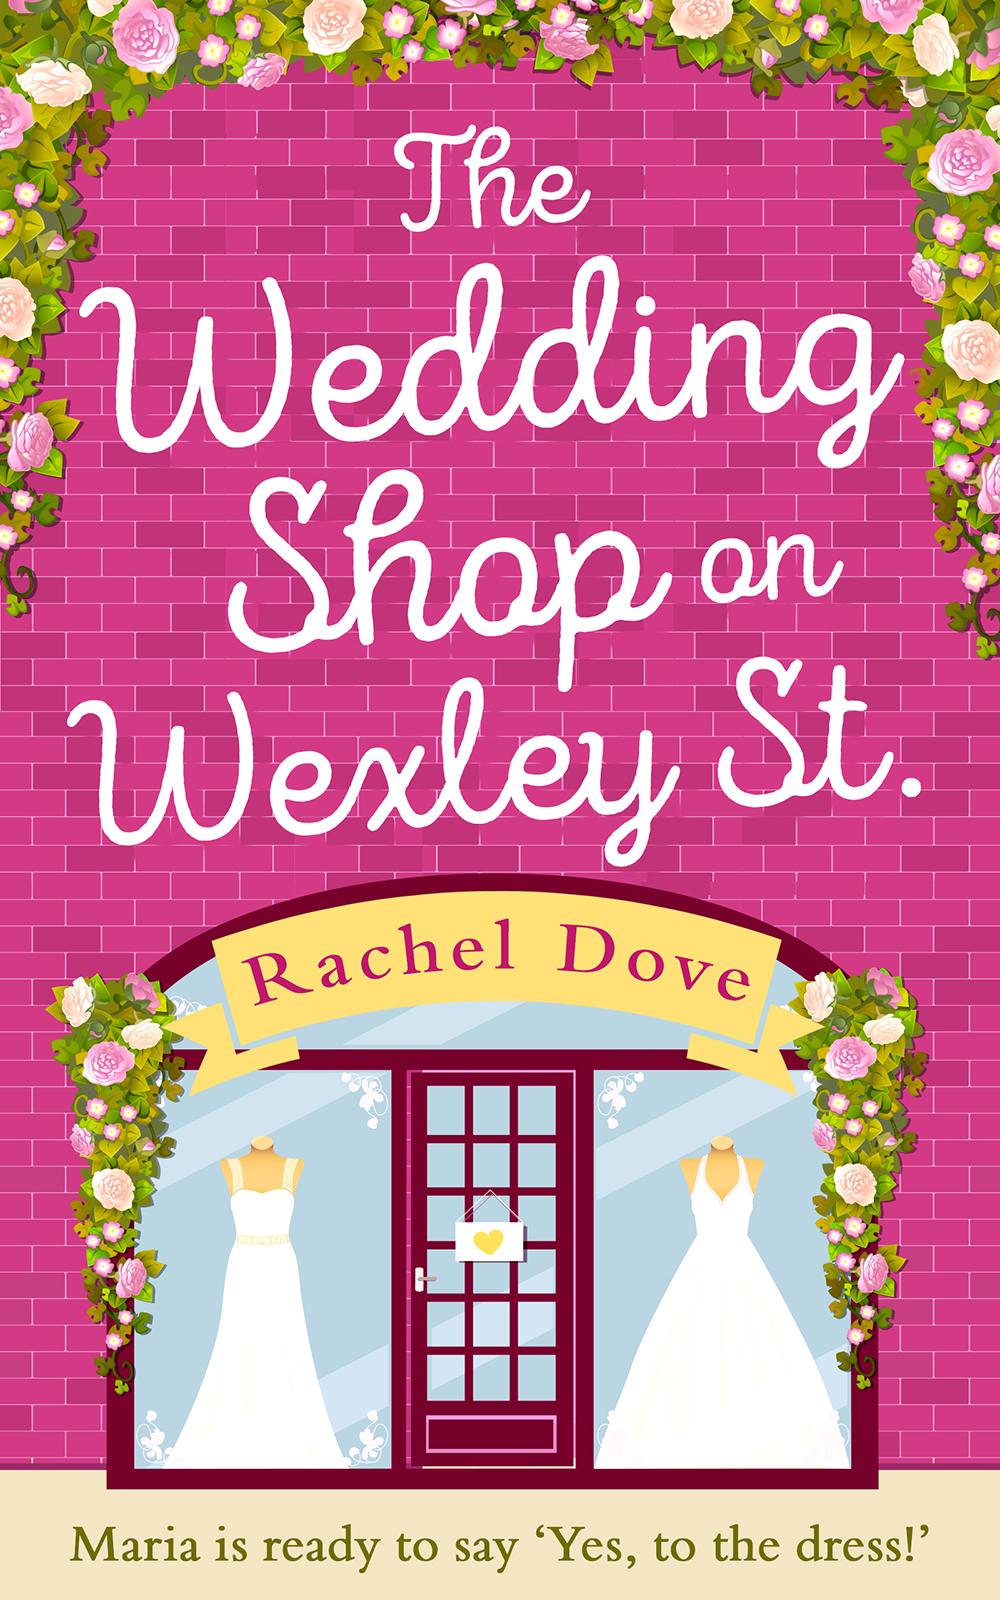 Rachel Dove The Wedding Shop on Wexley Street: A laugh out loud romance to curl up with in 2018 hook up cut out corset with panties